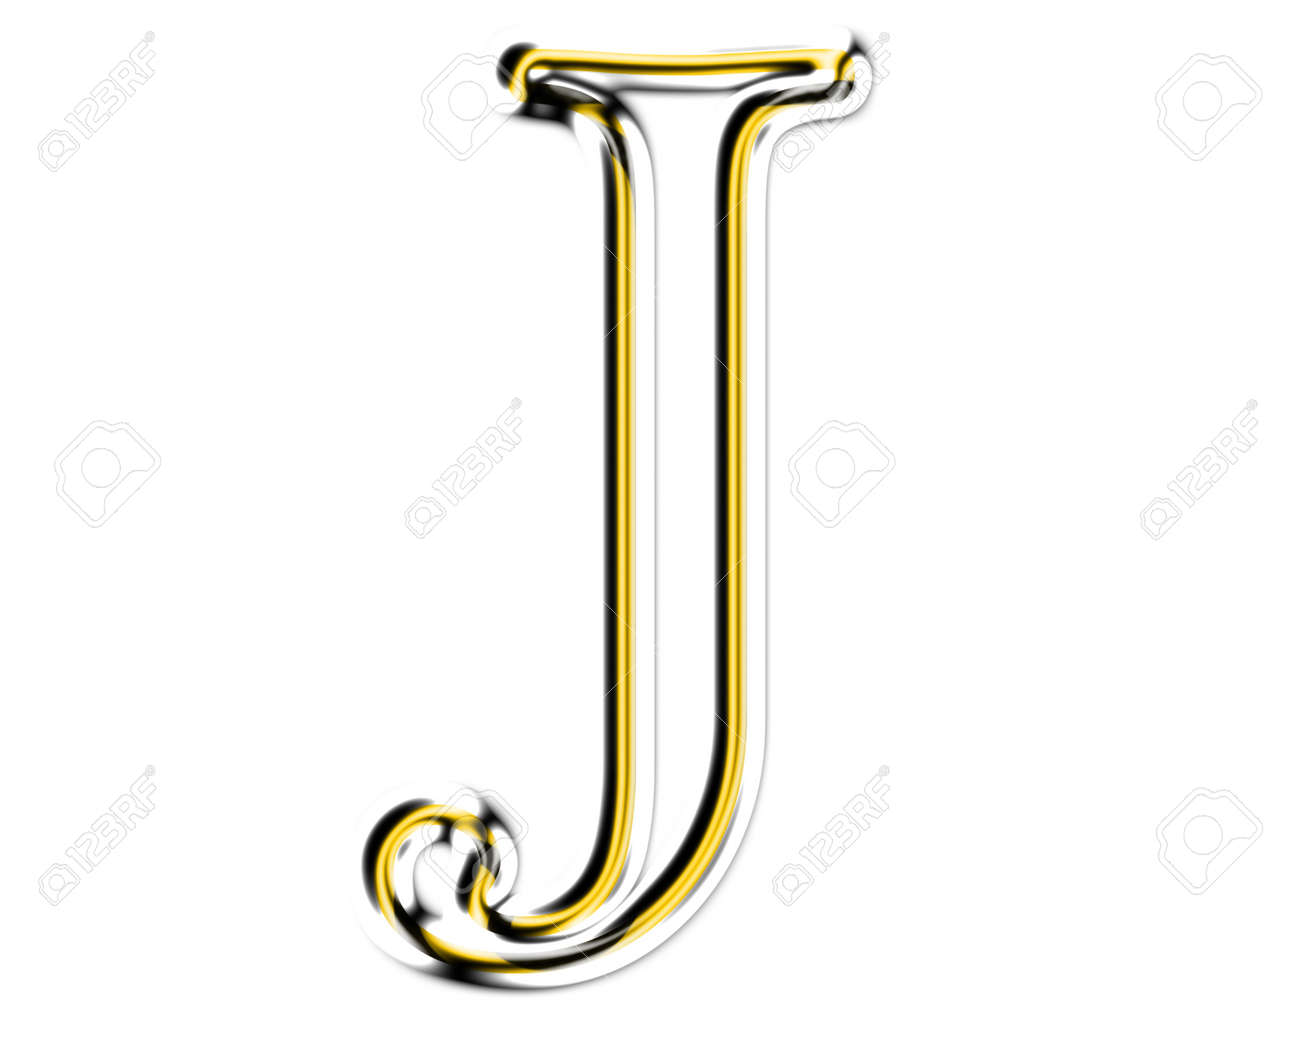 Letter J  from metal solid alphabet. Stock Photo - 11507340